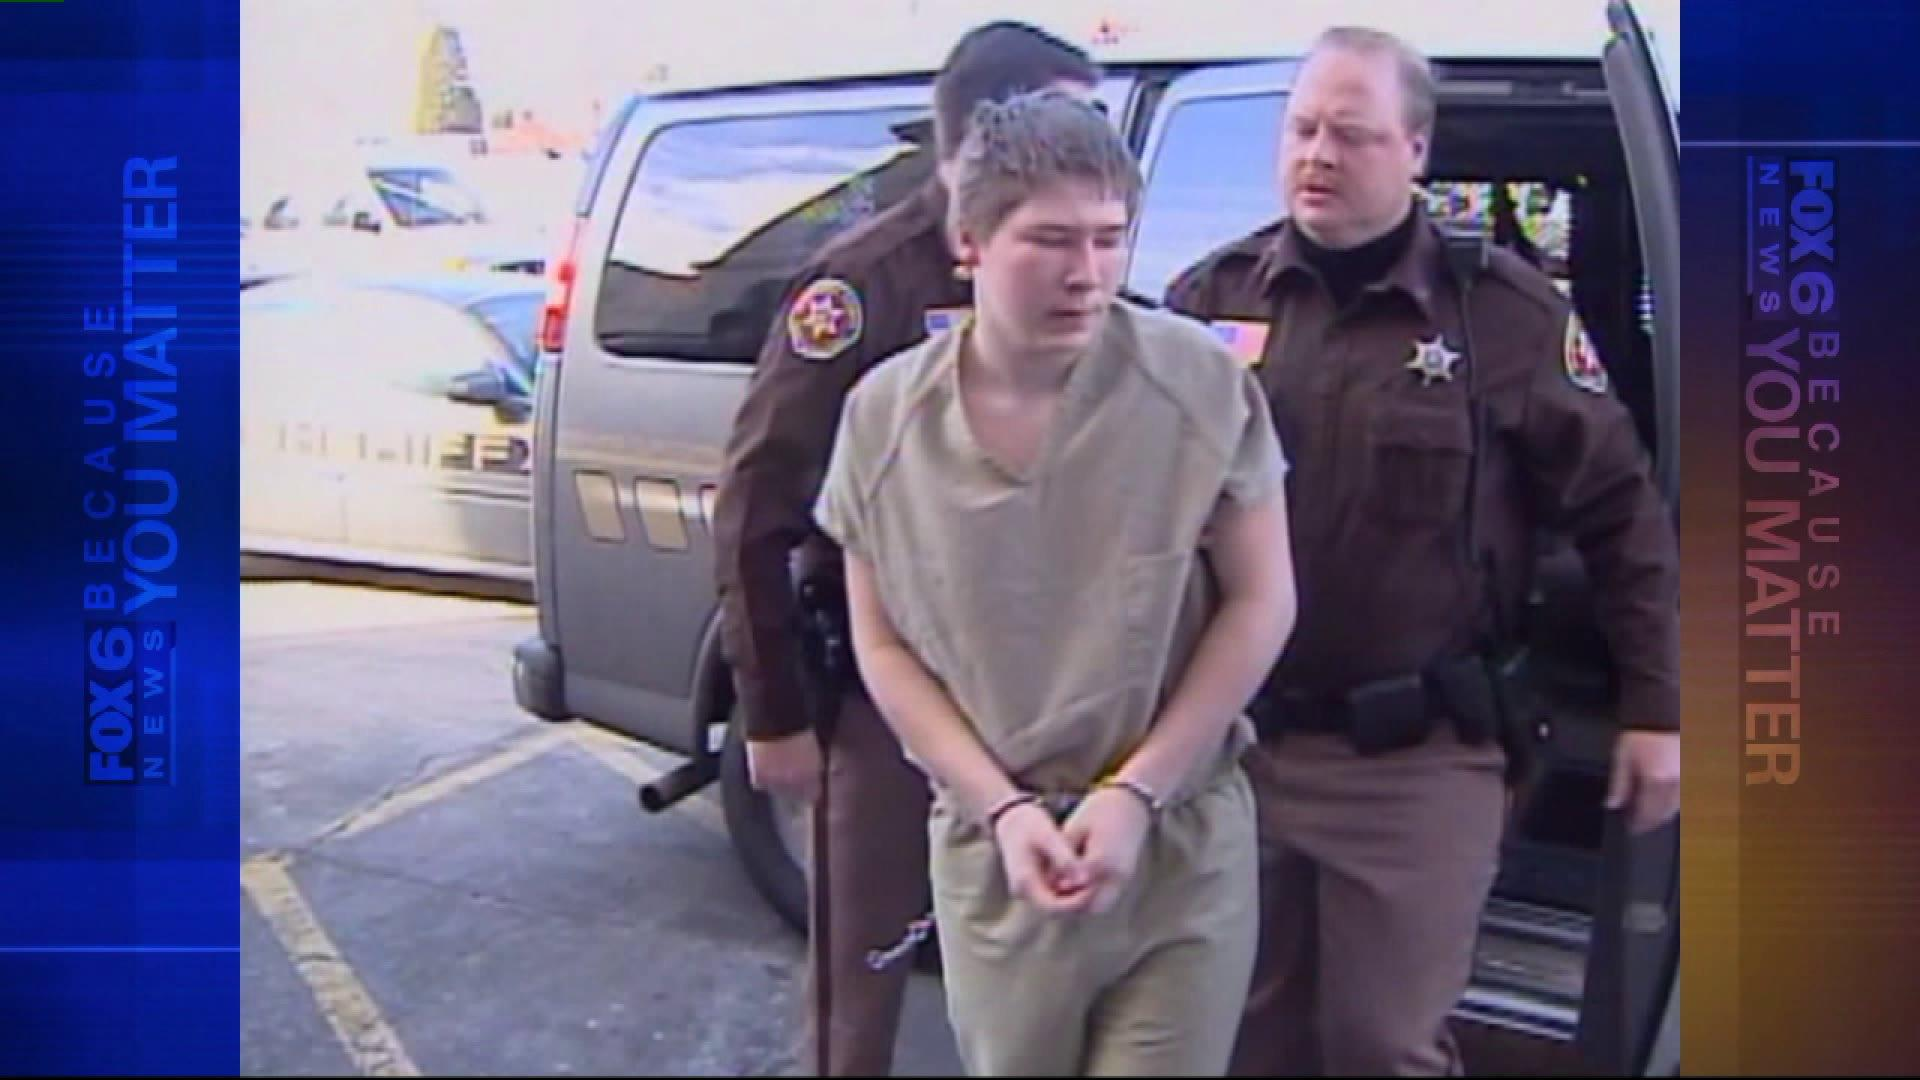 Appeals Court Affirms Decision by Judge to Overturn Brendan Dassey's Conviction